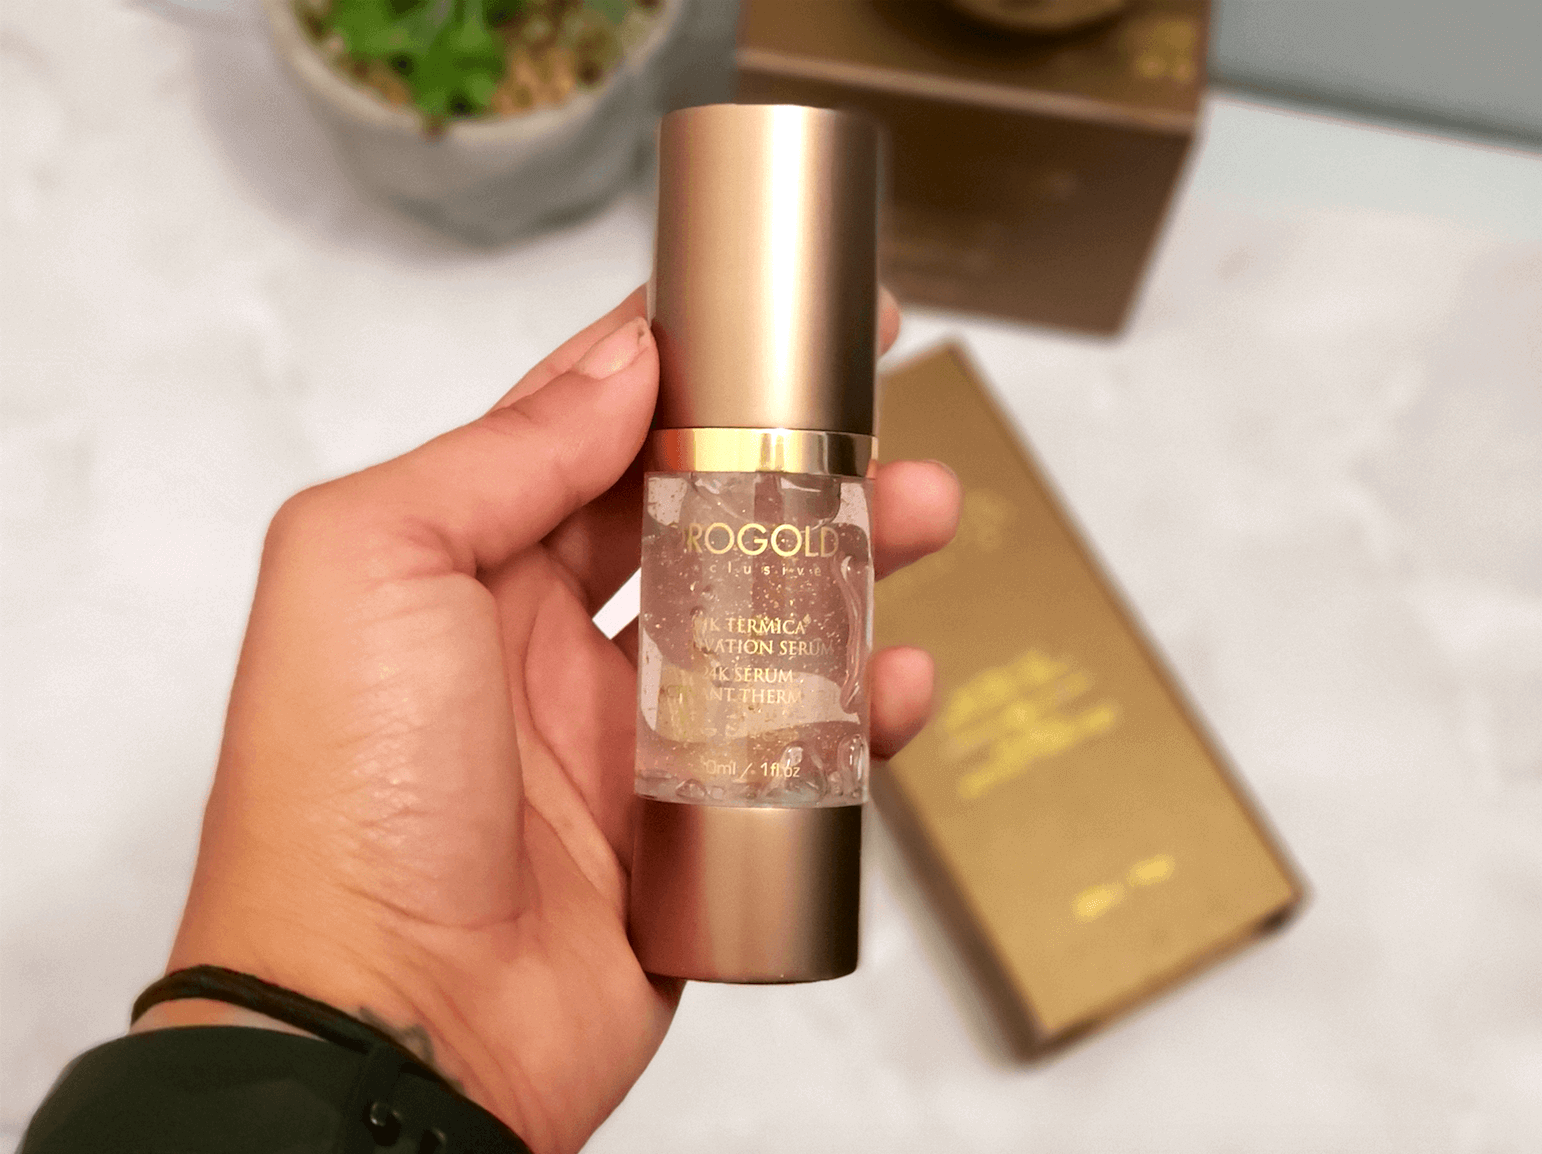 Review of Orogold 24K Tèrmica® Activation Serum